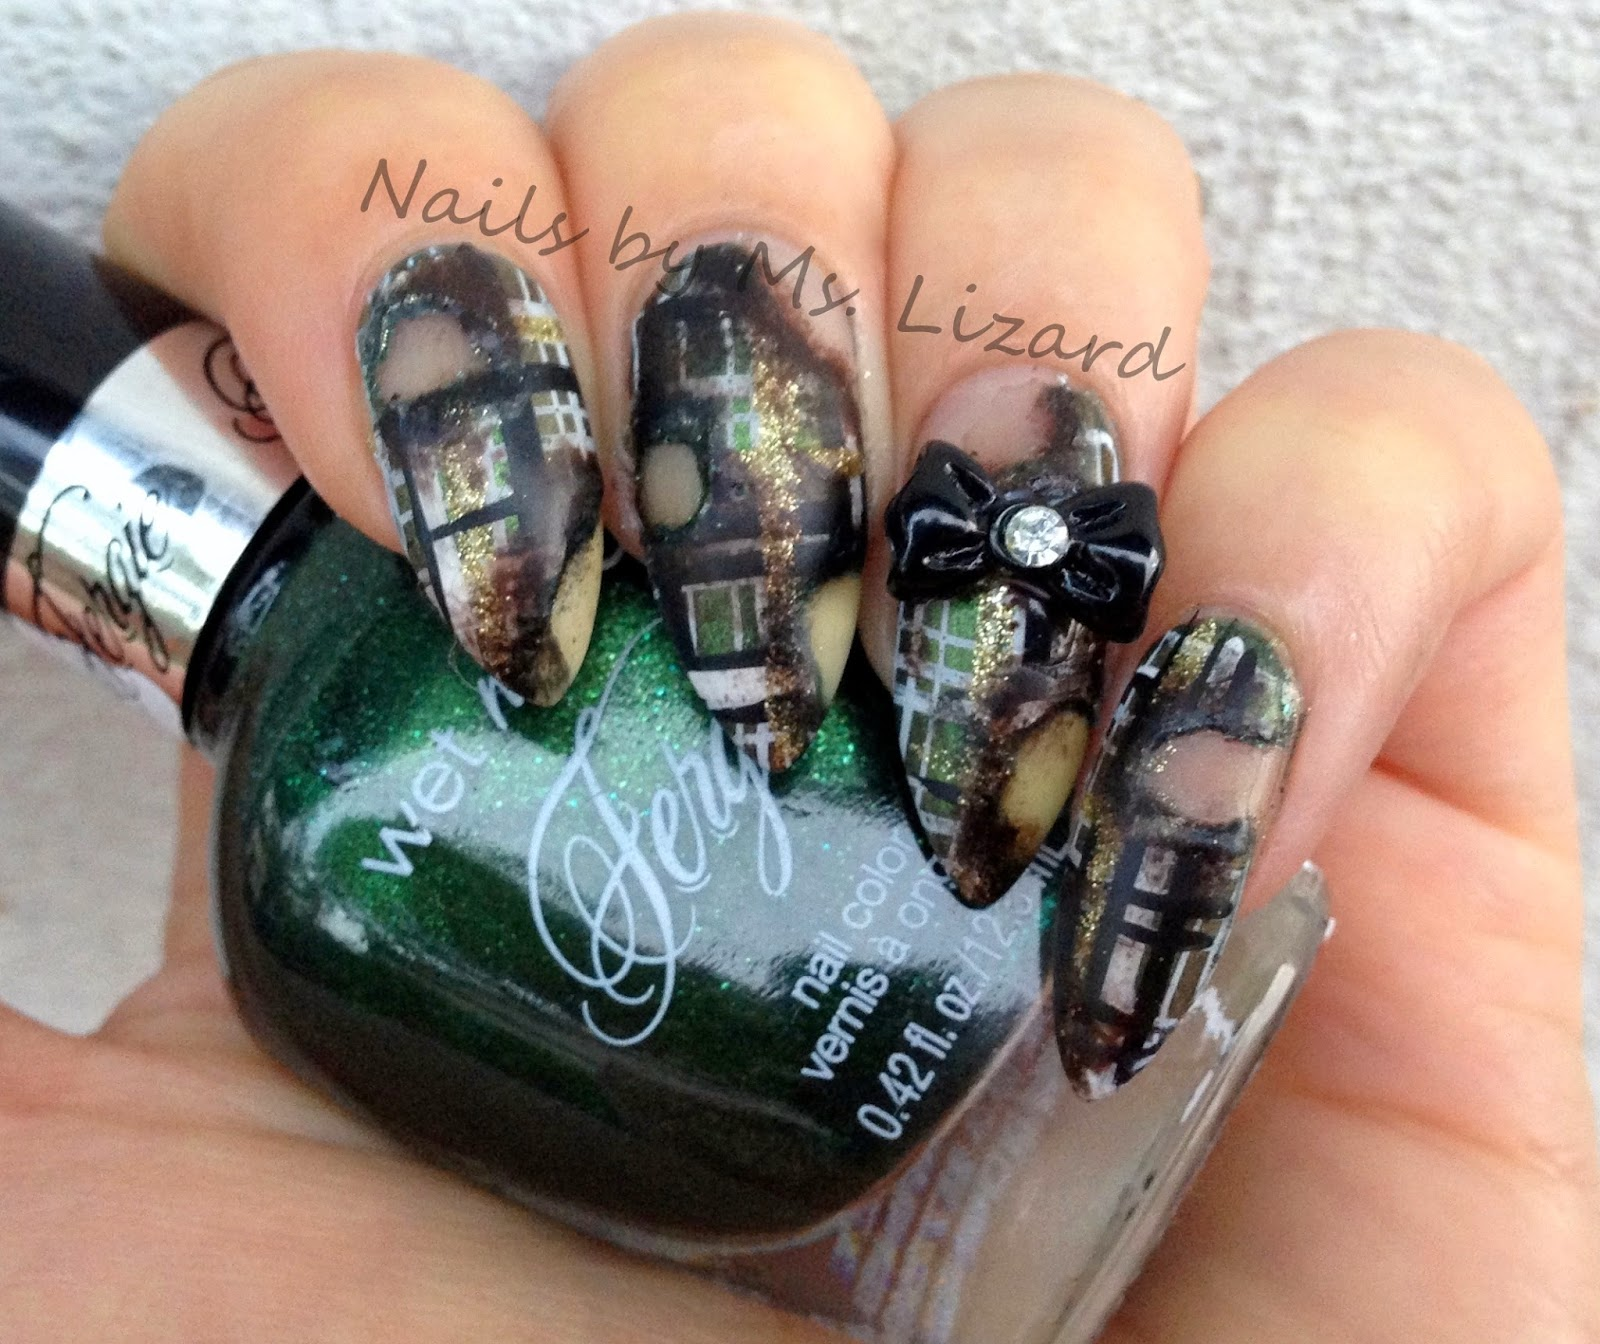 Nails by Ms. Lizard: Plaid Gift Wrap Nails & Burnt Gift Wrap